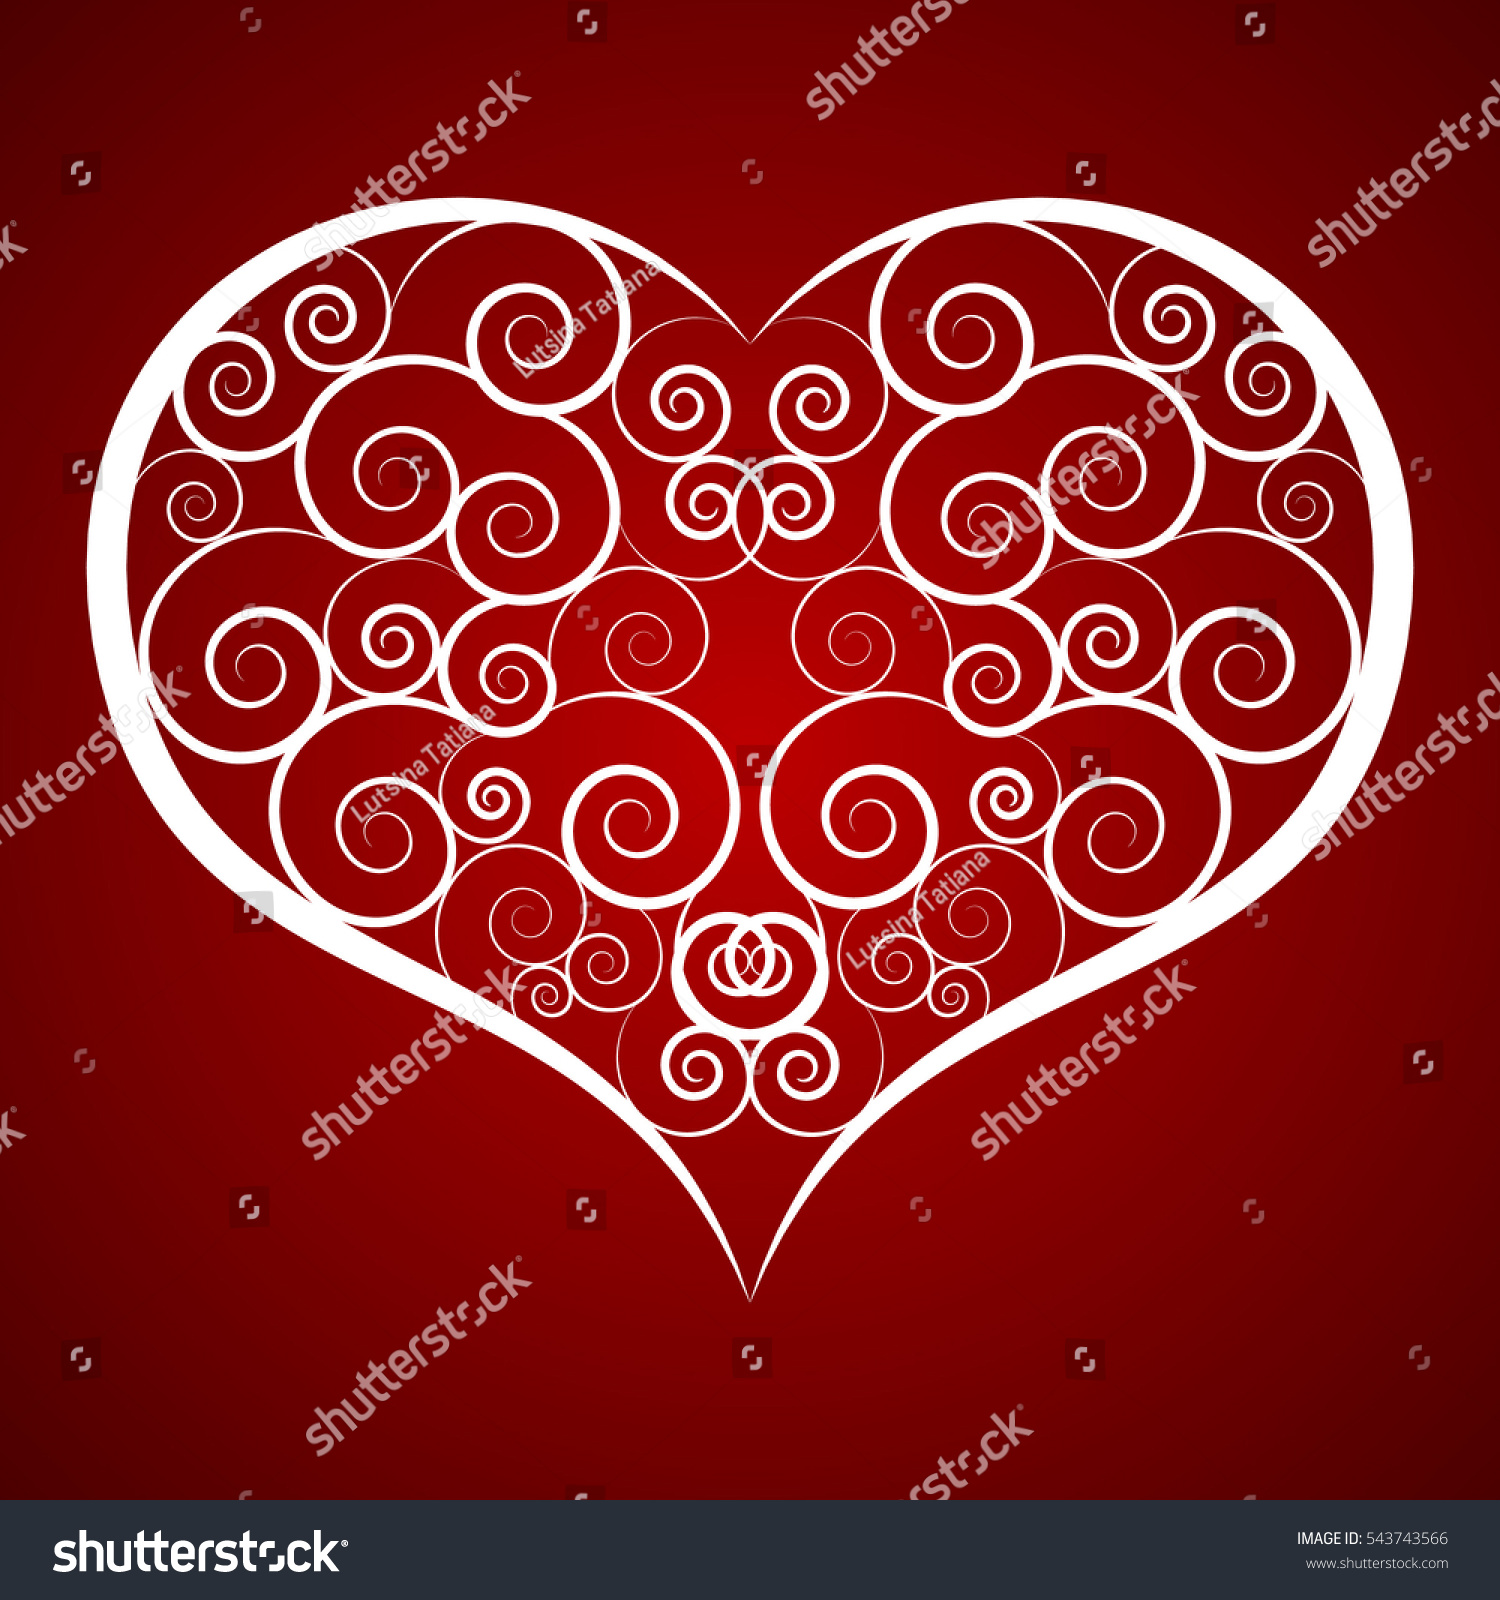 Ornamental heart on bright red background stock vector 543743566 ornamental heart on bright red background valentines day greeting card love concept for valentines kristyandbryce Choice Image